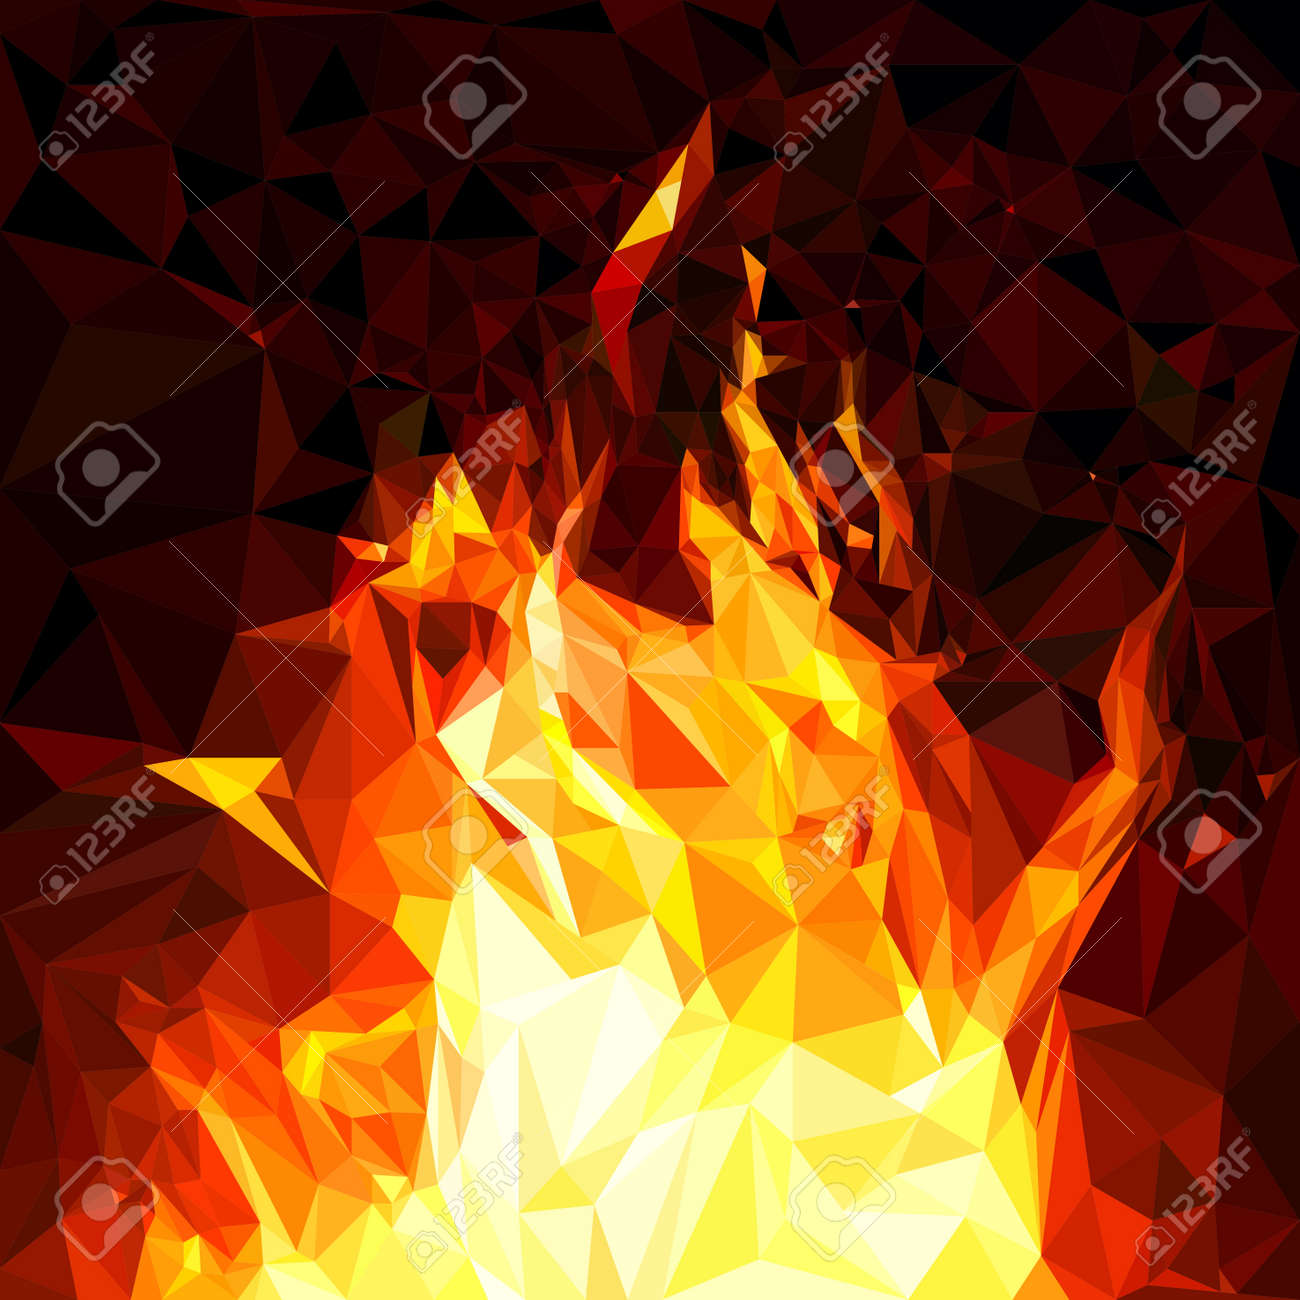 Fiery fire background with polygon style digital painting techniques, vector illustration and design. - 163466186